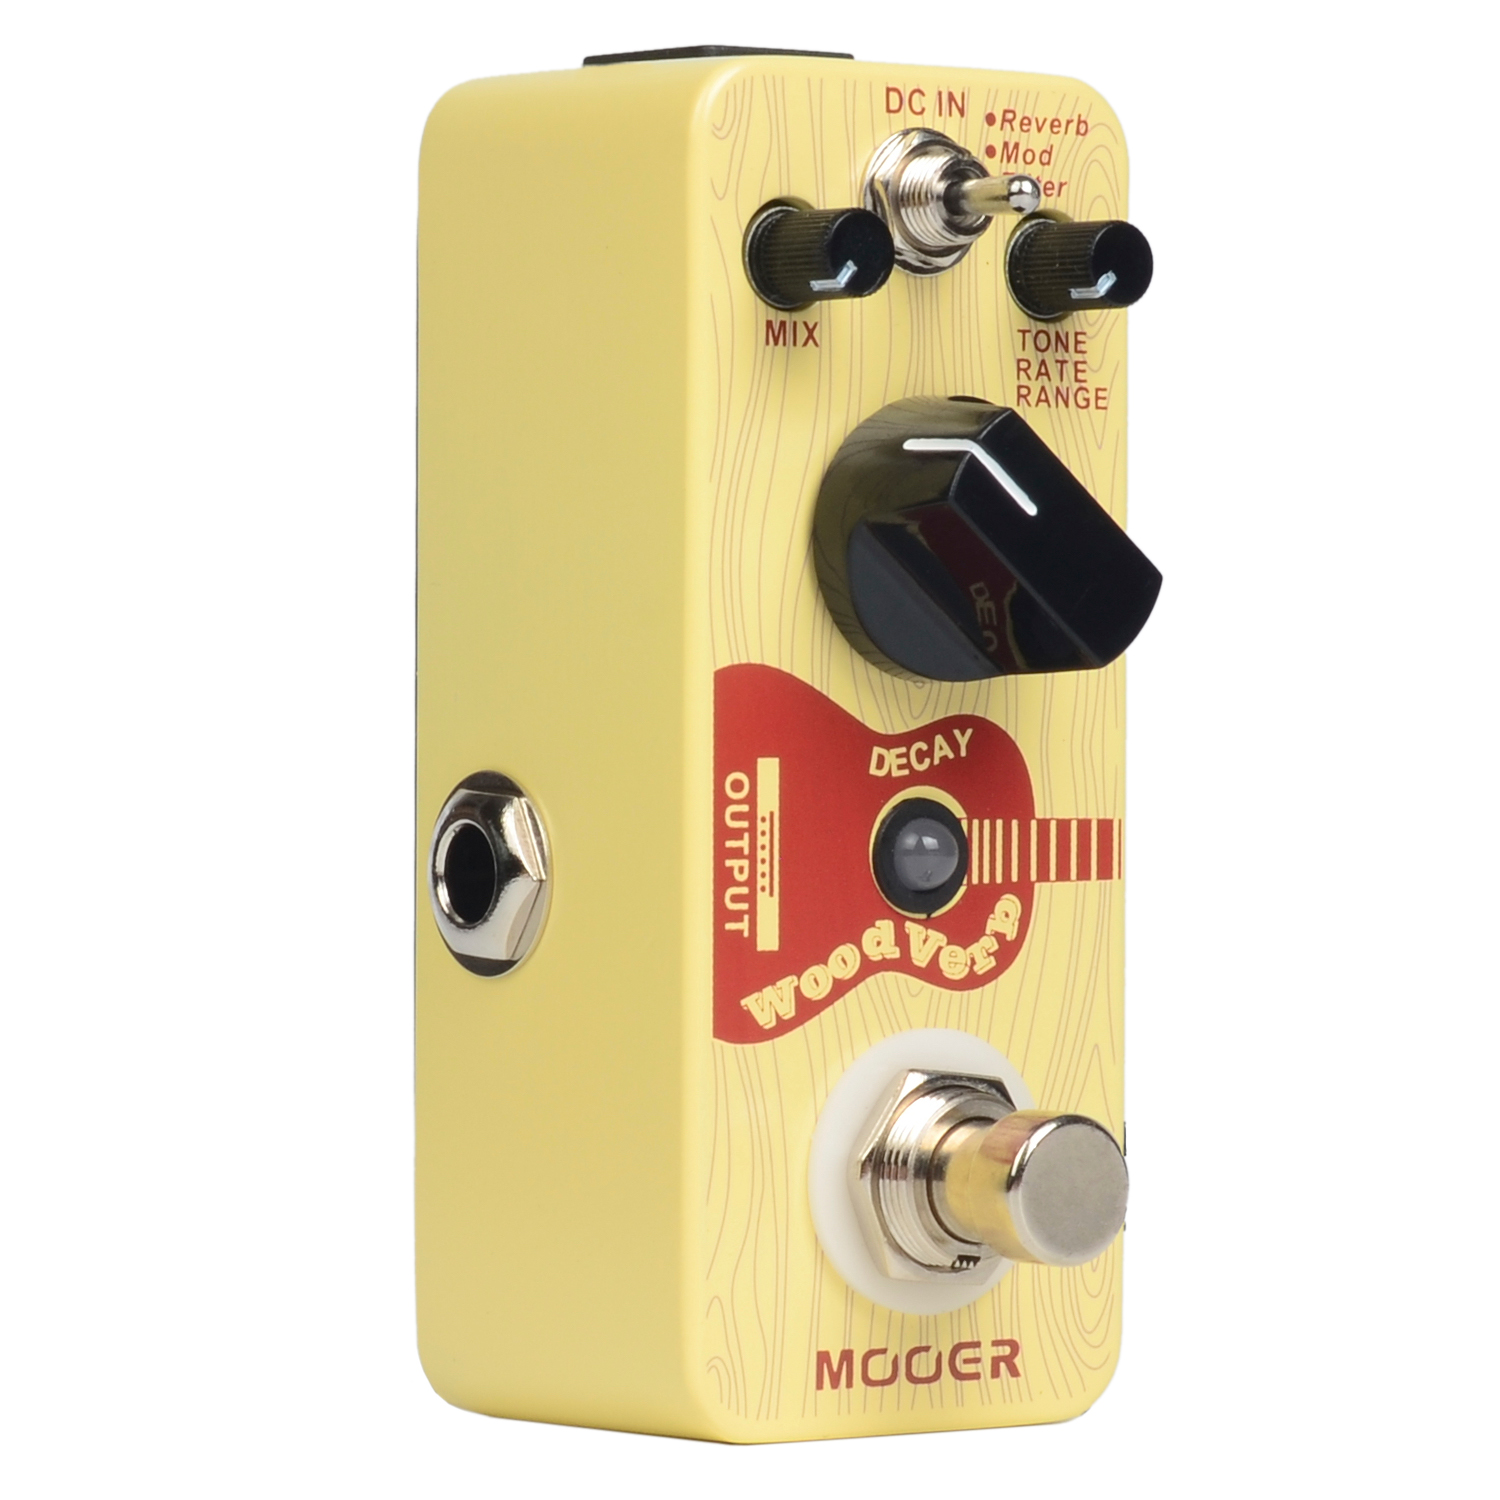 Mooer Wood Verb Reverb Digital Effects Acoustic Guitar Effect Pedal Tiny size True bypass MRV3 sews aroma aov 3 ocean verb digital reverb electric guitar effect pedal mini single effect with true bypass